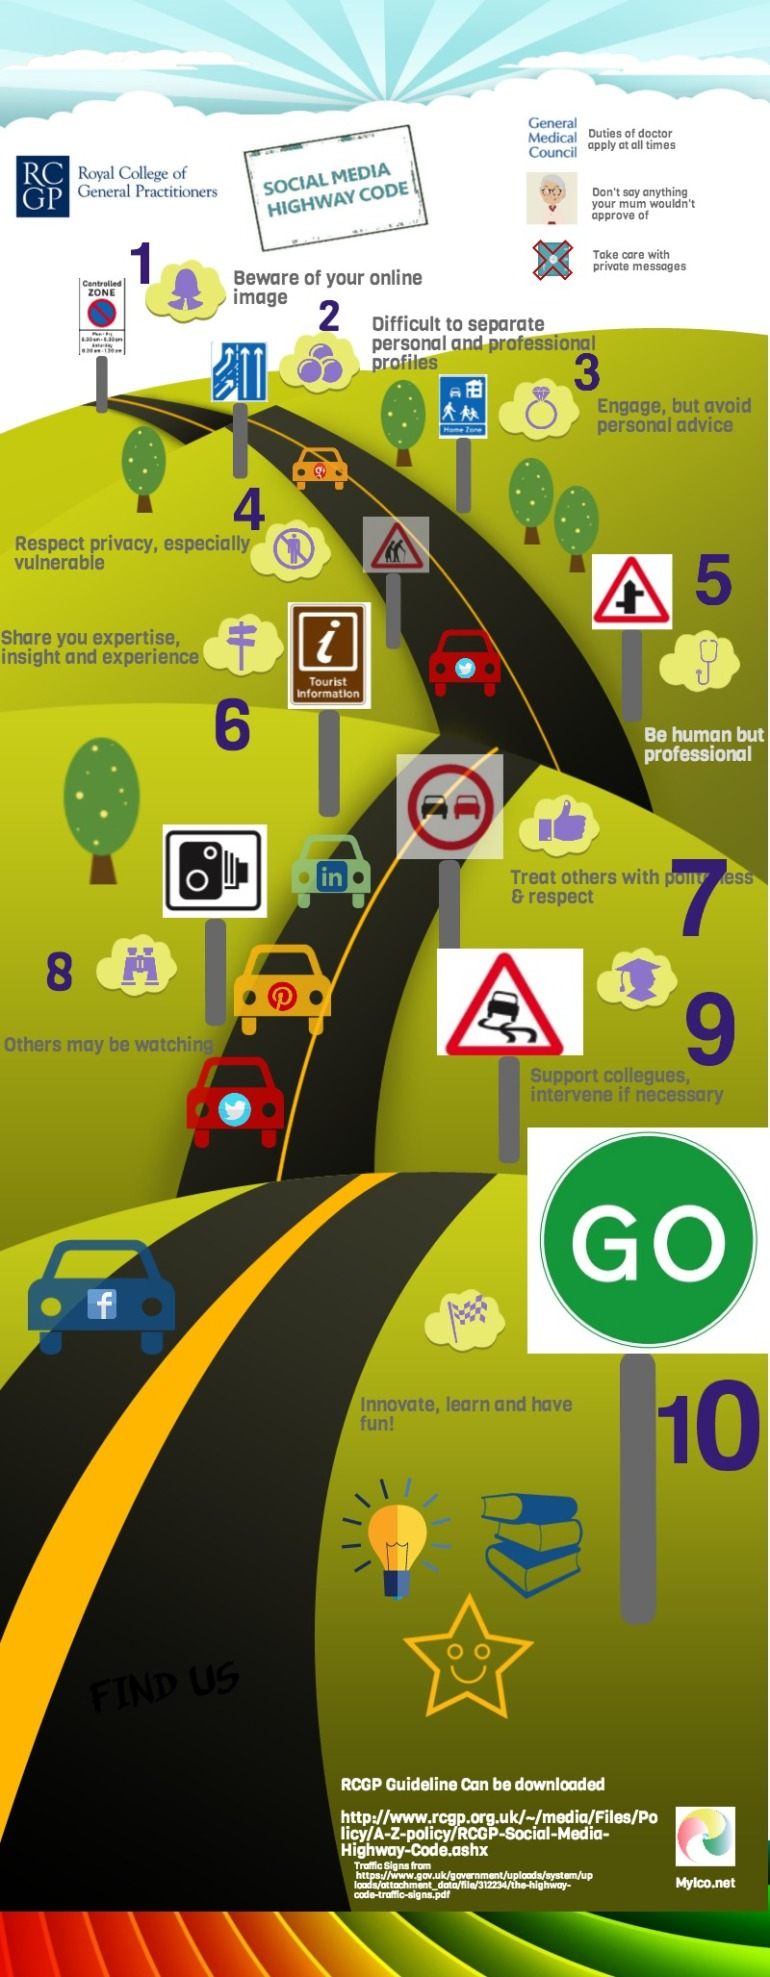 RCGP - Social Media Highway Code